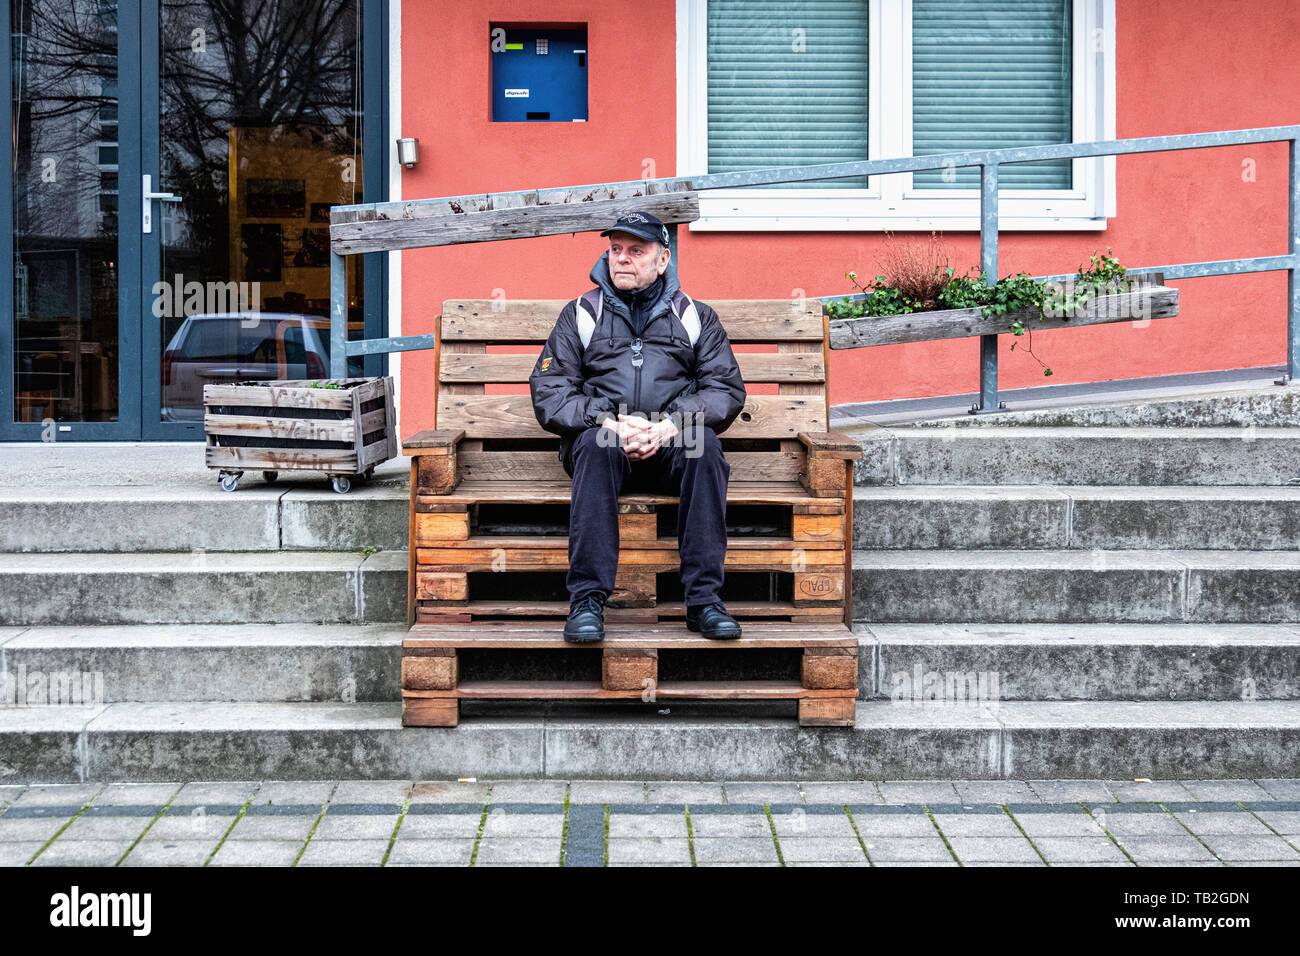 Schöneberg-Berlin. Elderly man sitting on wooden Bench made of recycled wood outside YNot cafe & bar. Reclaimed old wood palettes. - Stock Image